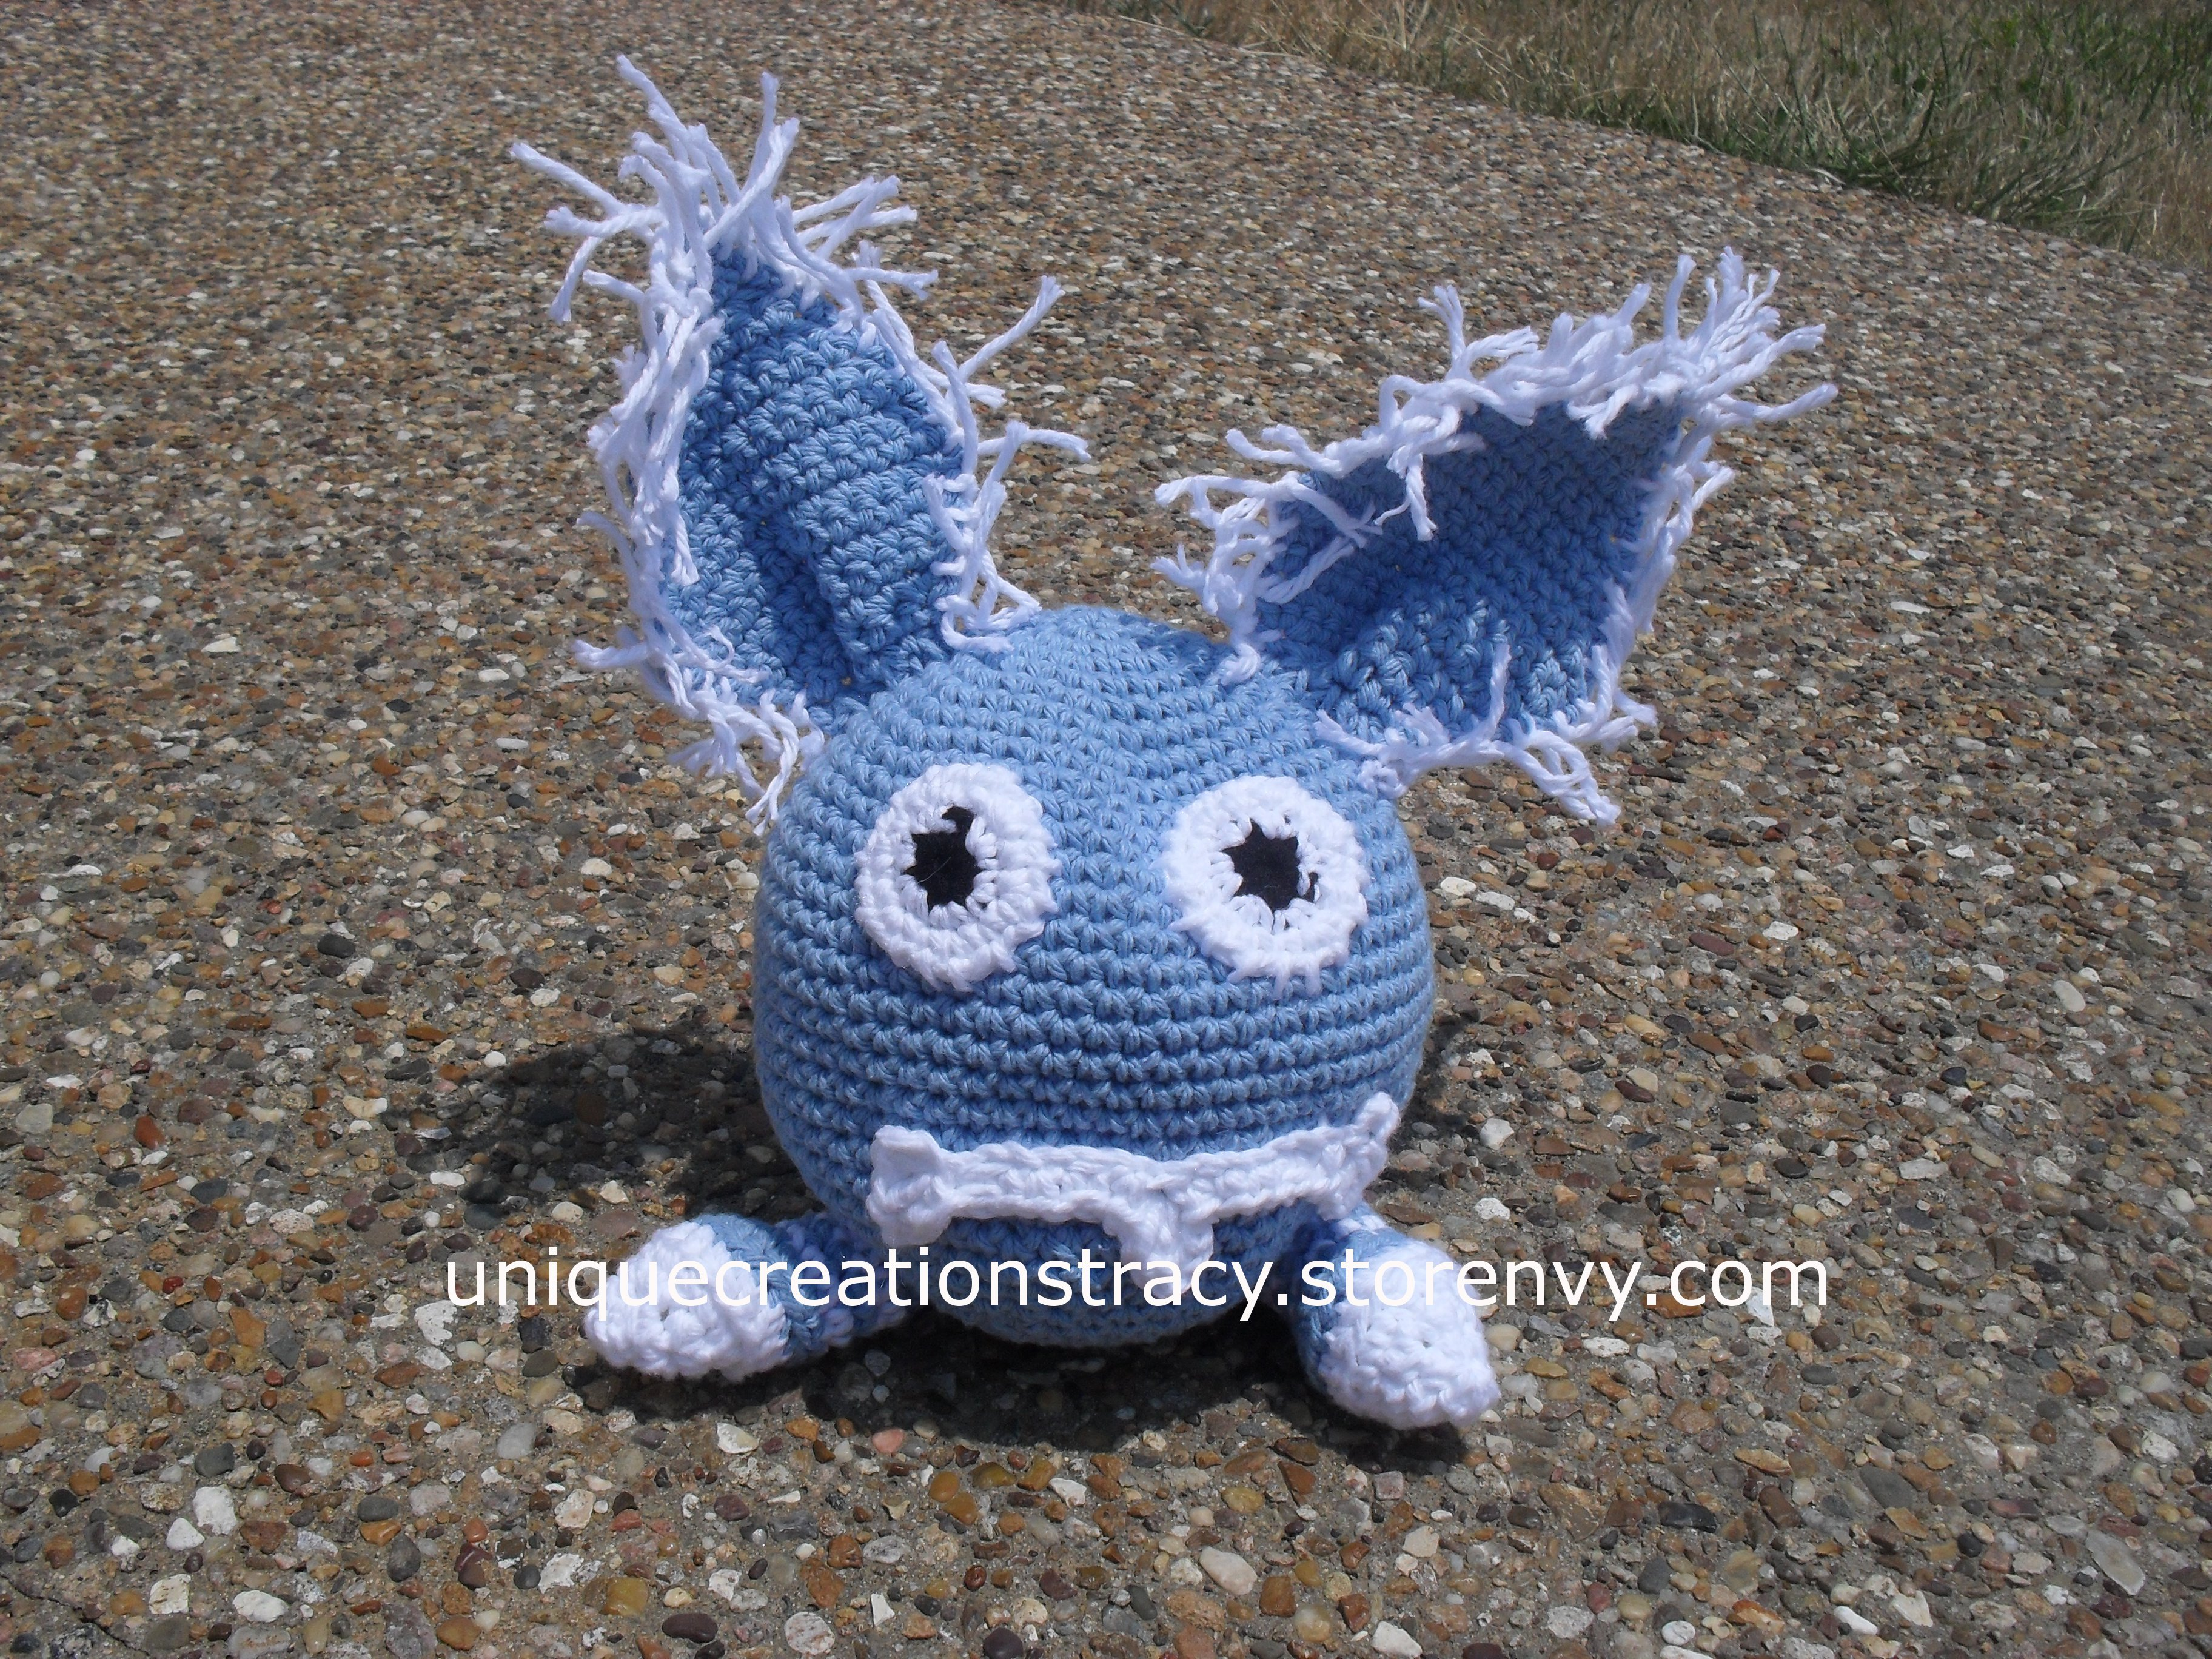 Custom Monster #4 from Unique Creations by Tracy